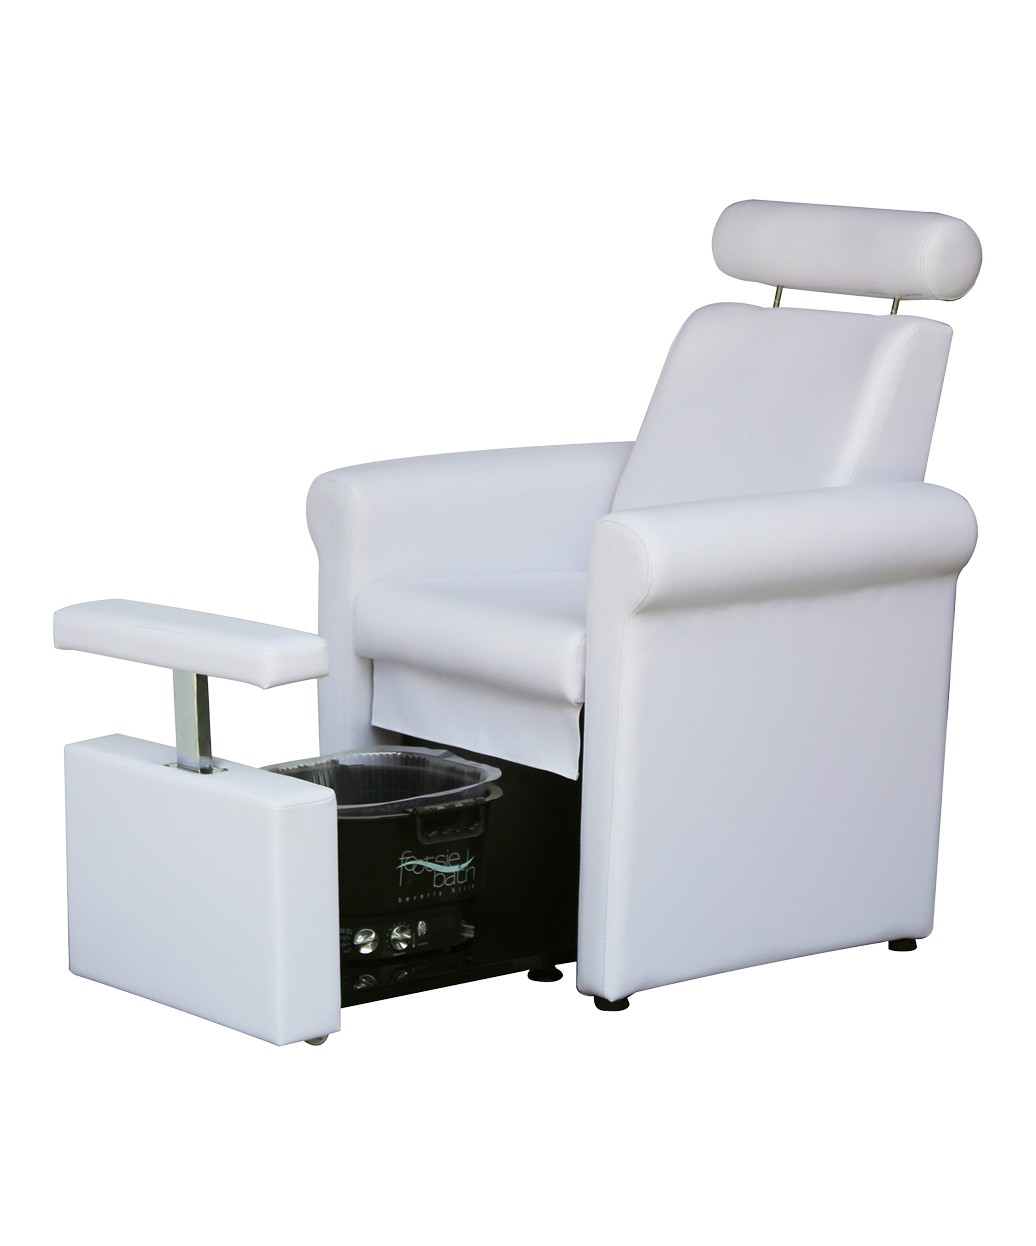 Pedicure Stool With Footrest Mona Lisa Pedicure Chair